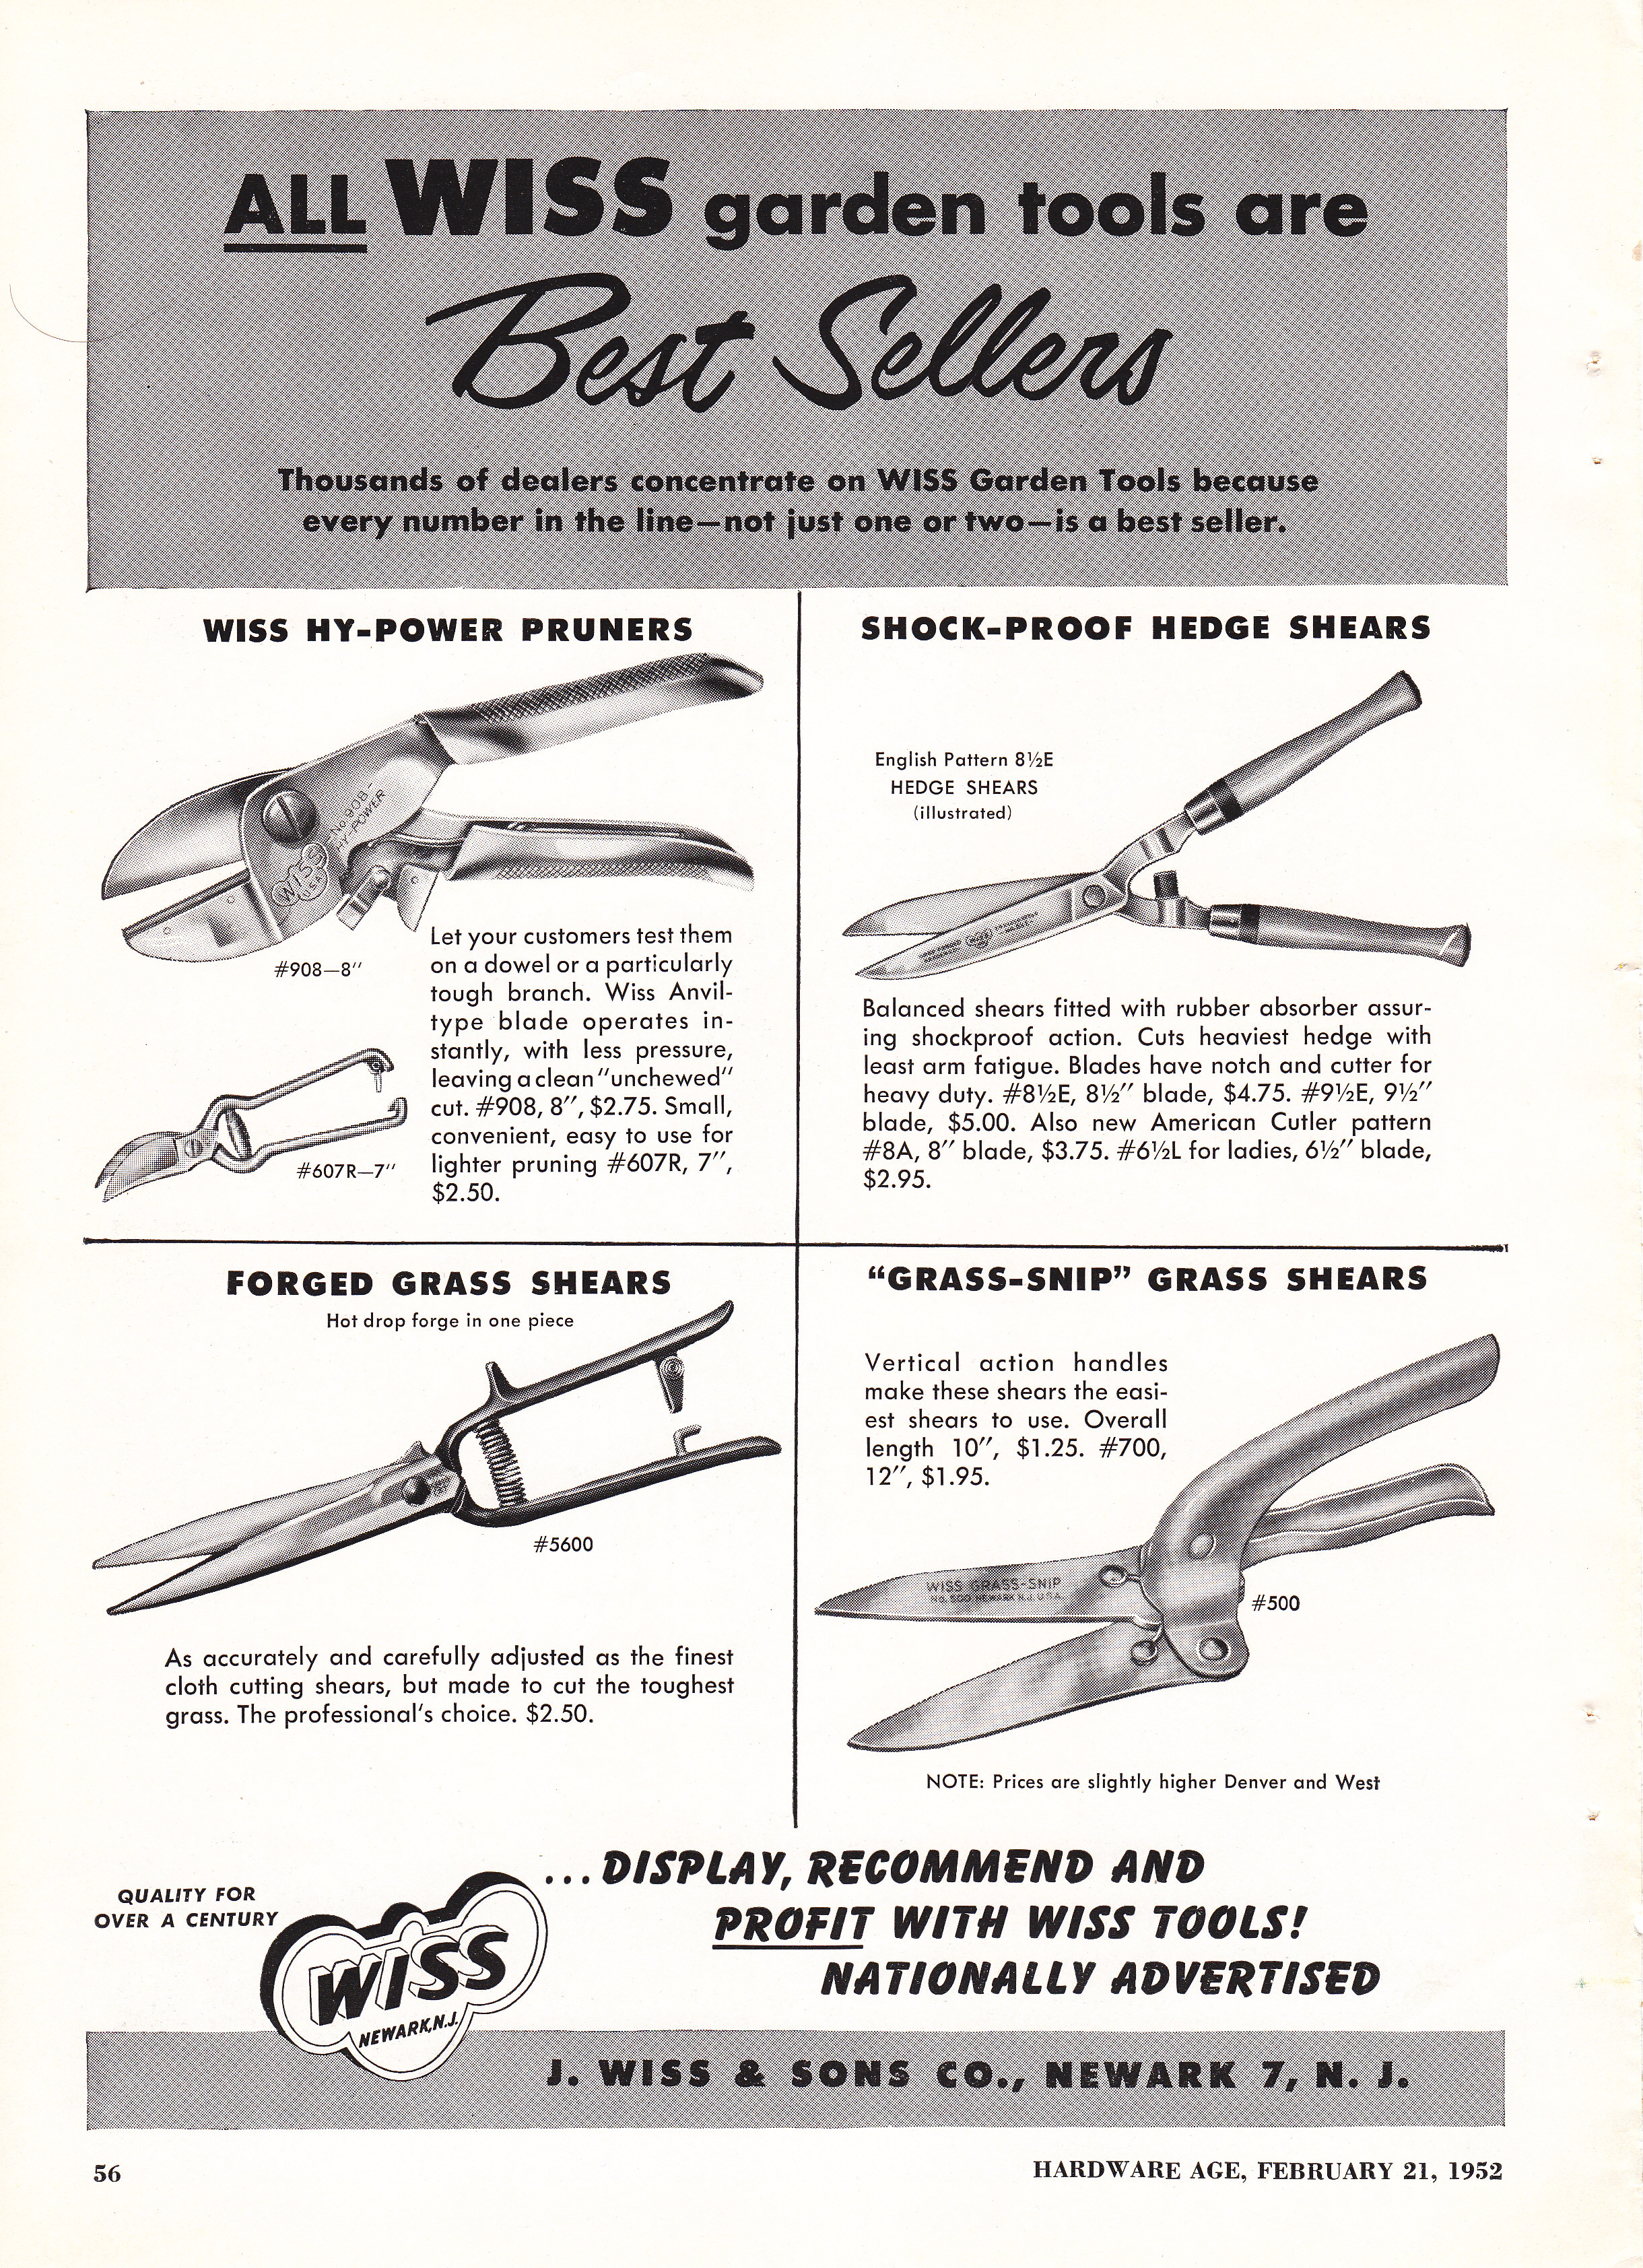 ... age all wiss garden tools 1952 feb 21 hardware age all wiss garden